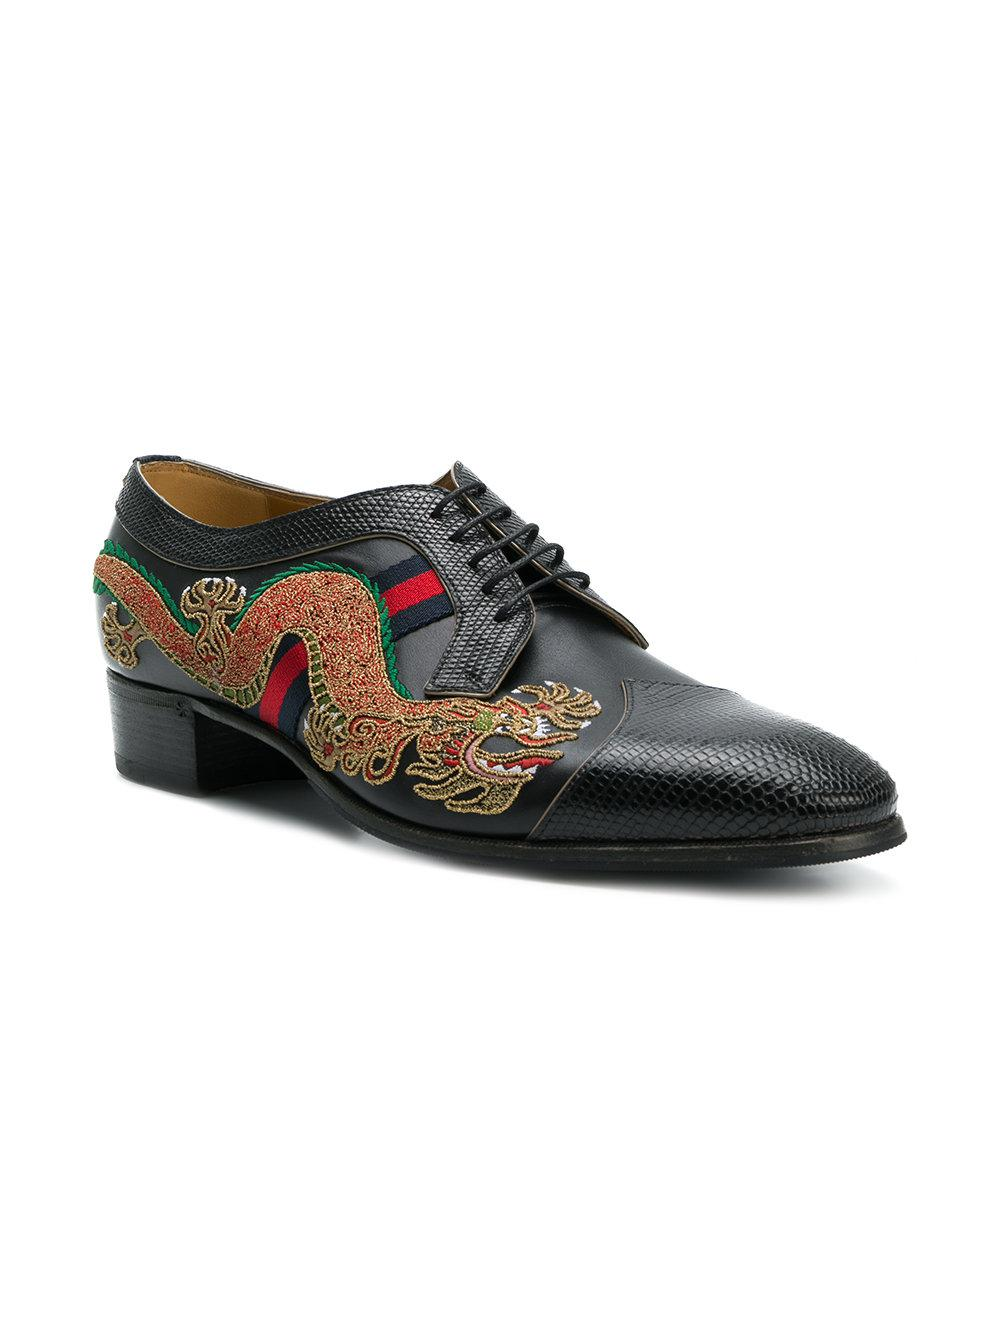 bdd105df7cbf6 Gucci Dragon-embroidered Lace-up Shoes in Black for Men - Lyst